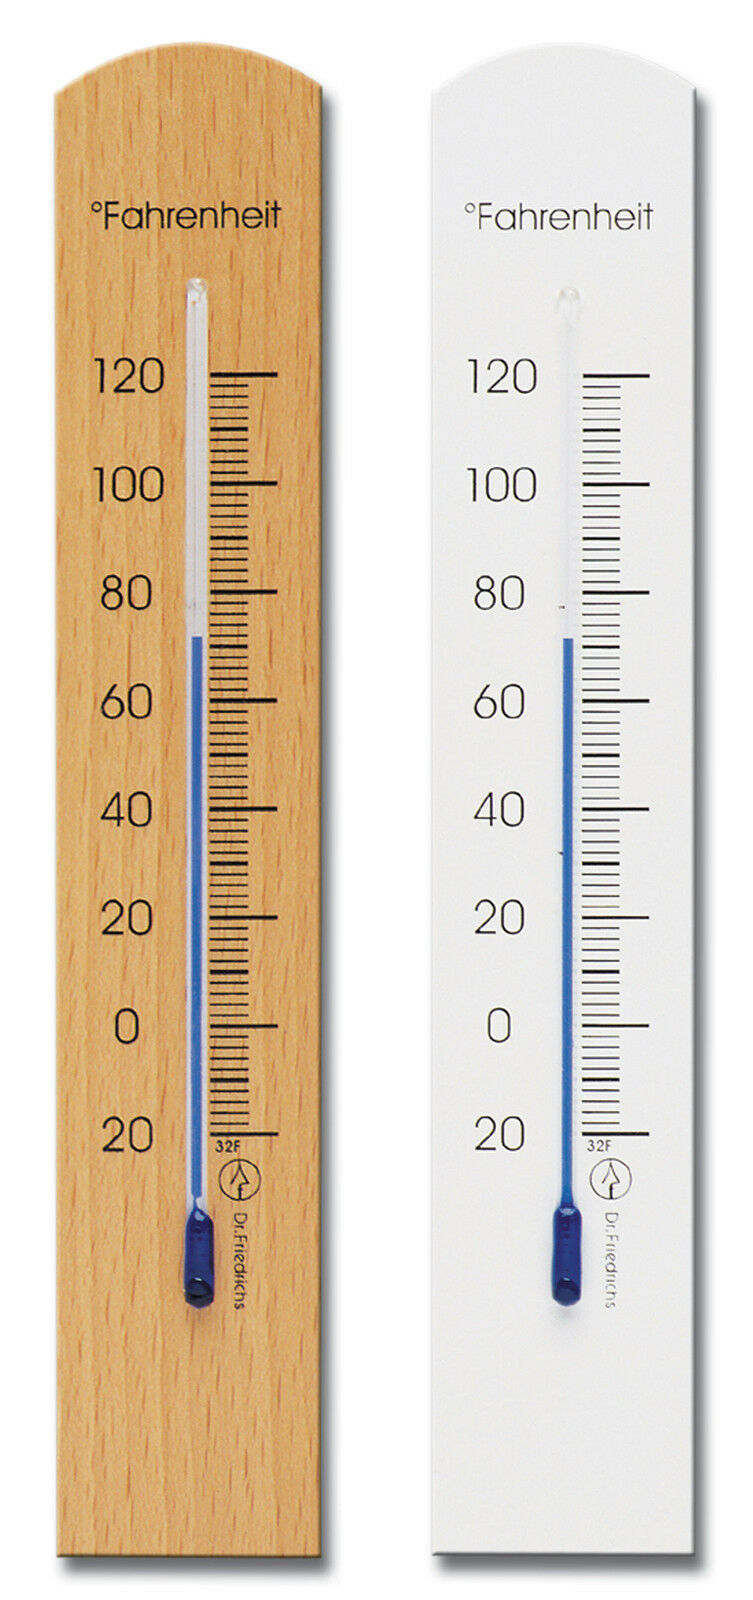 Analog Wall Thermometer Fahrenheit Scale Beech Wood Two Finishes 7.9 inch tall